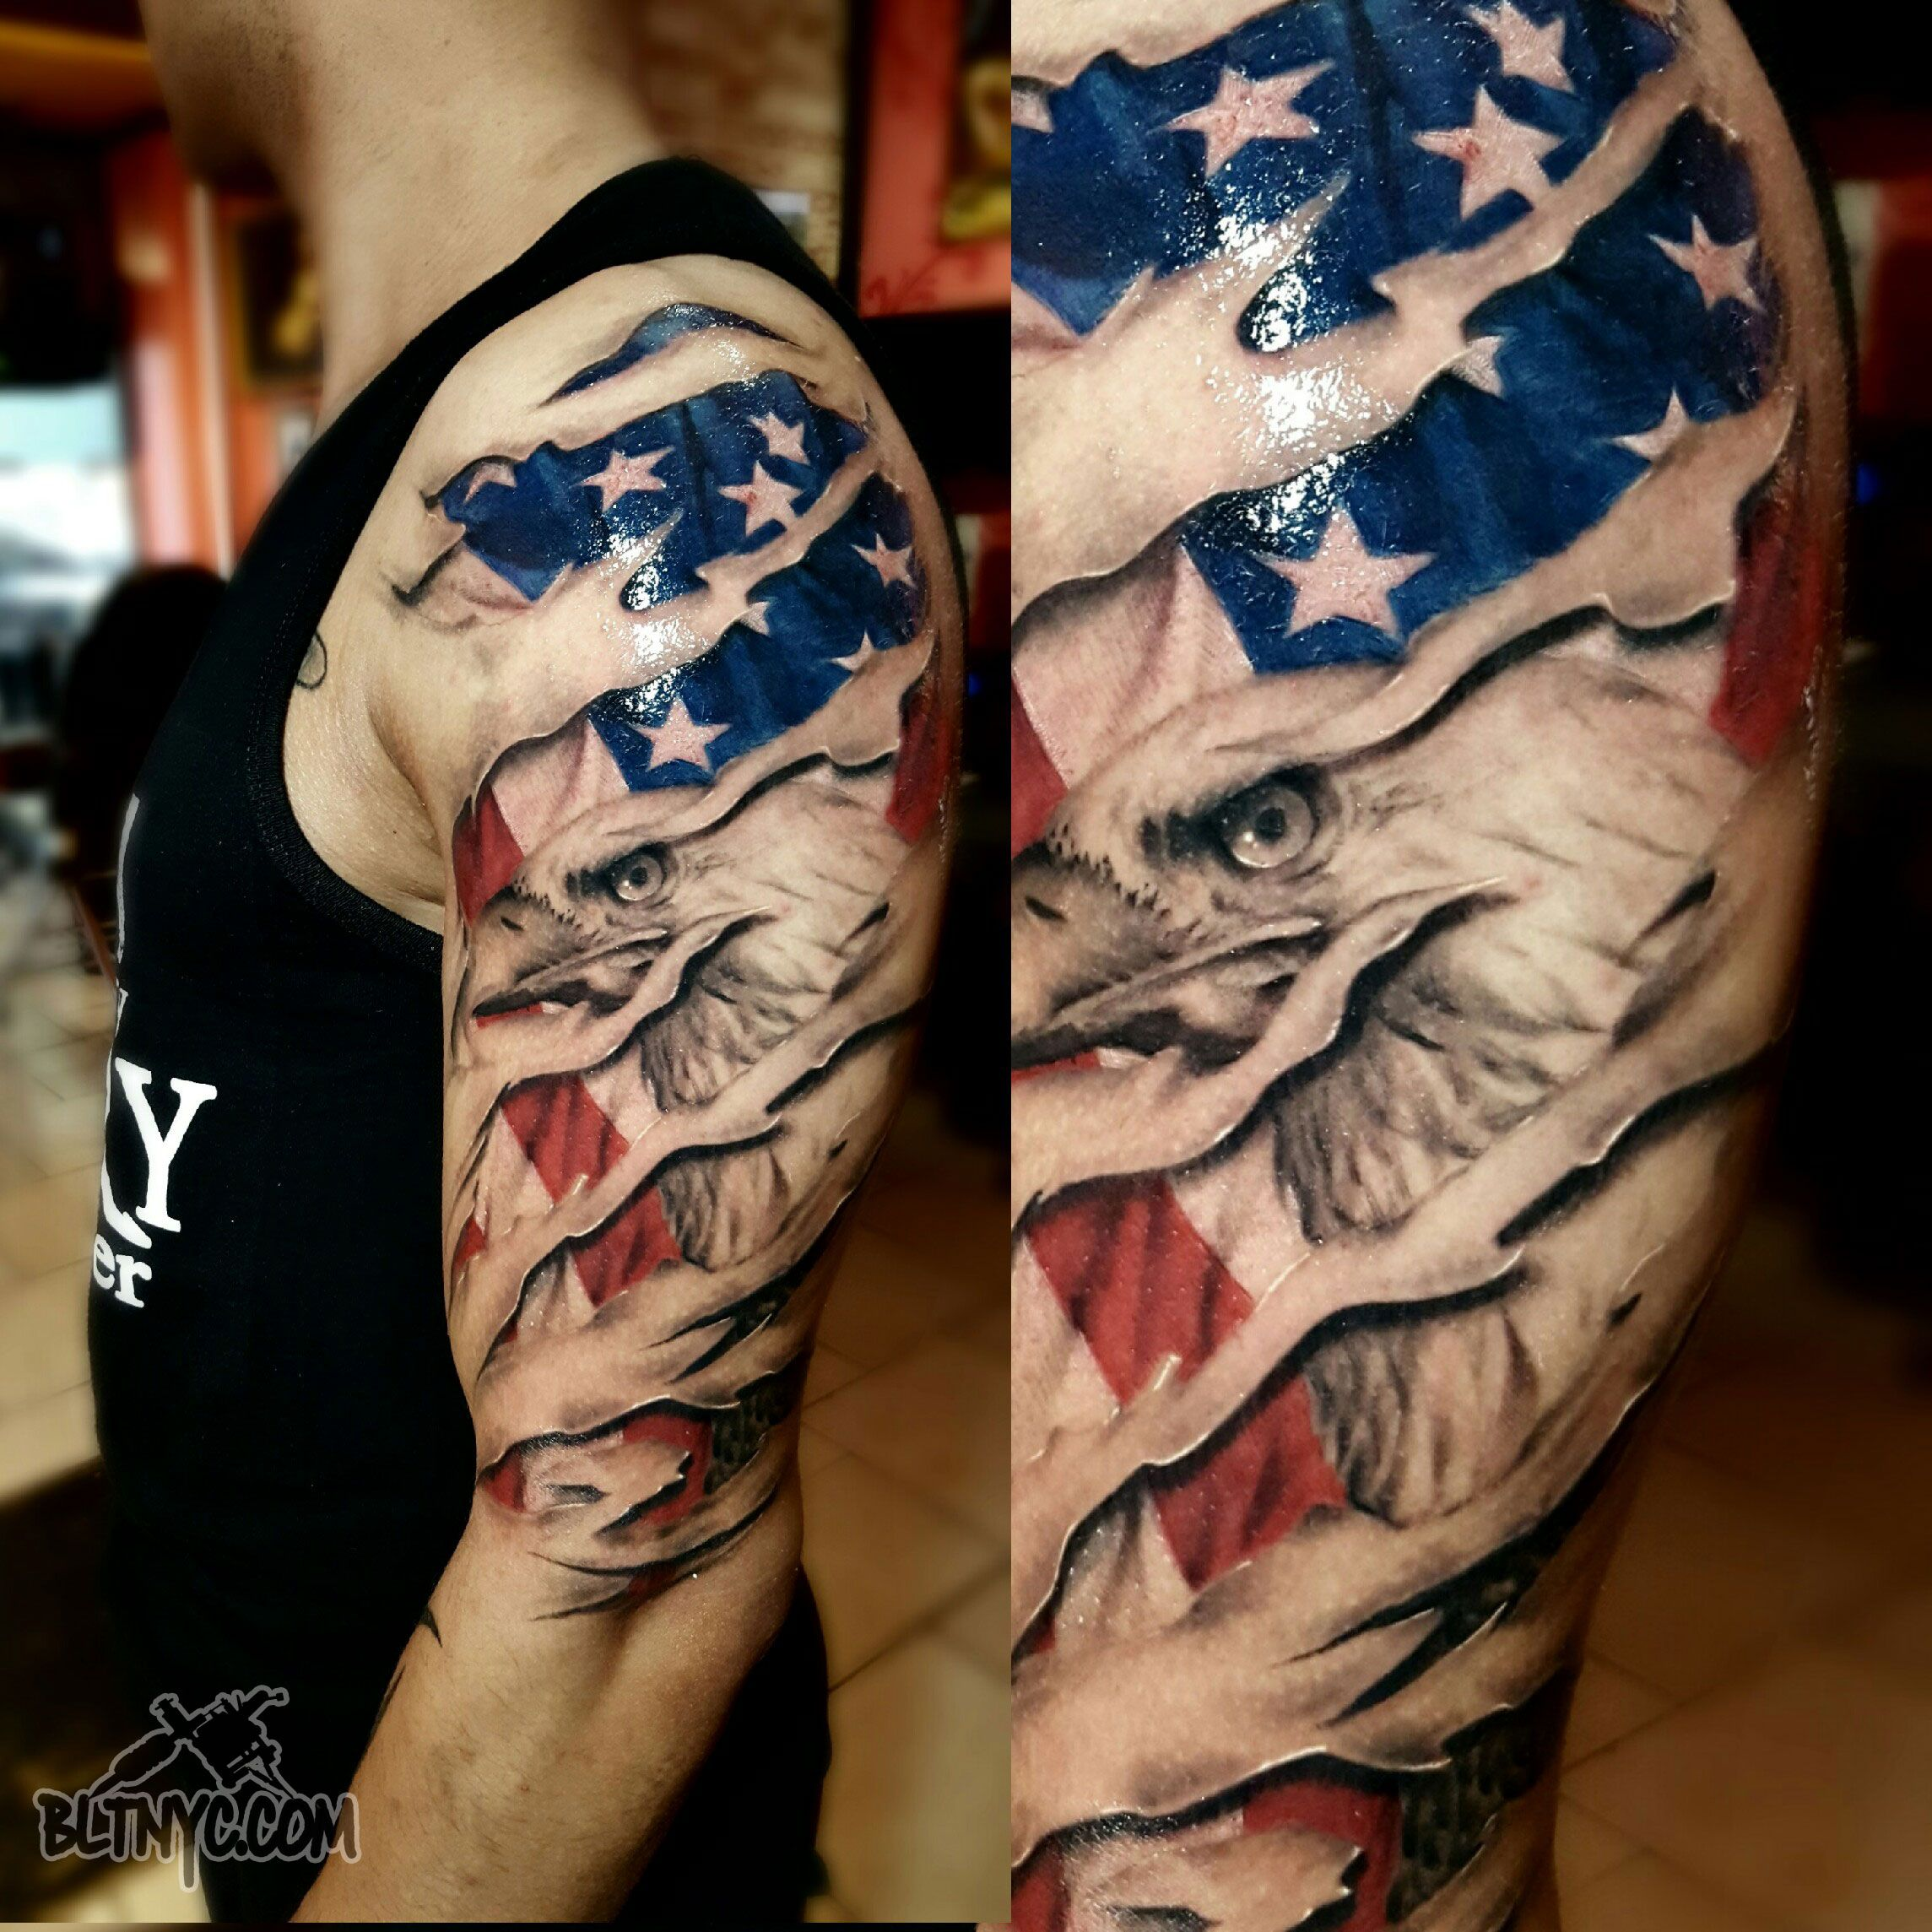 Fi fireman tattoo designs - Shredded Skin With American Flag And Eagle Tattoo By Carlos At Bltnyc Tattoo Shop Astoria Queens